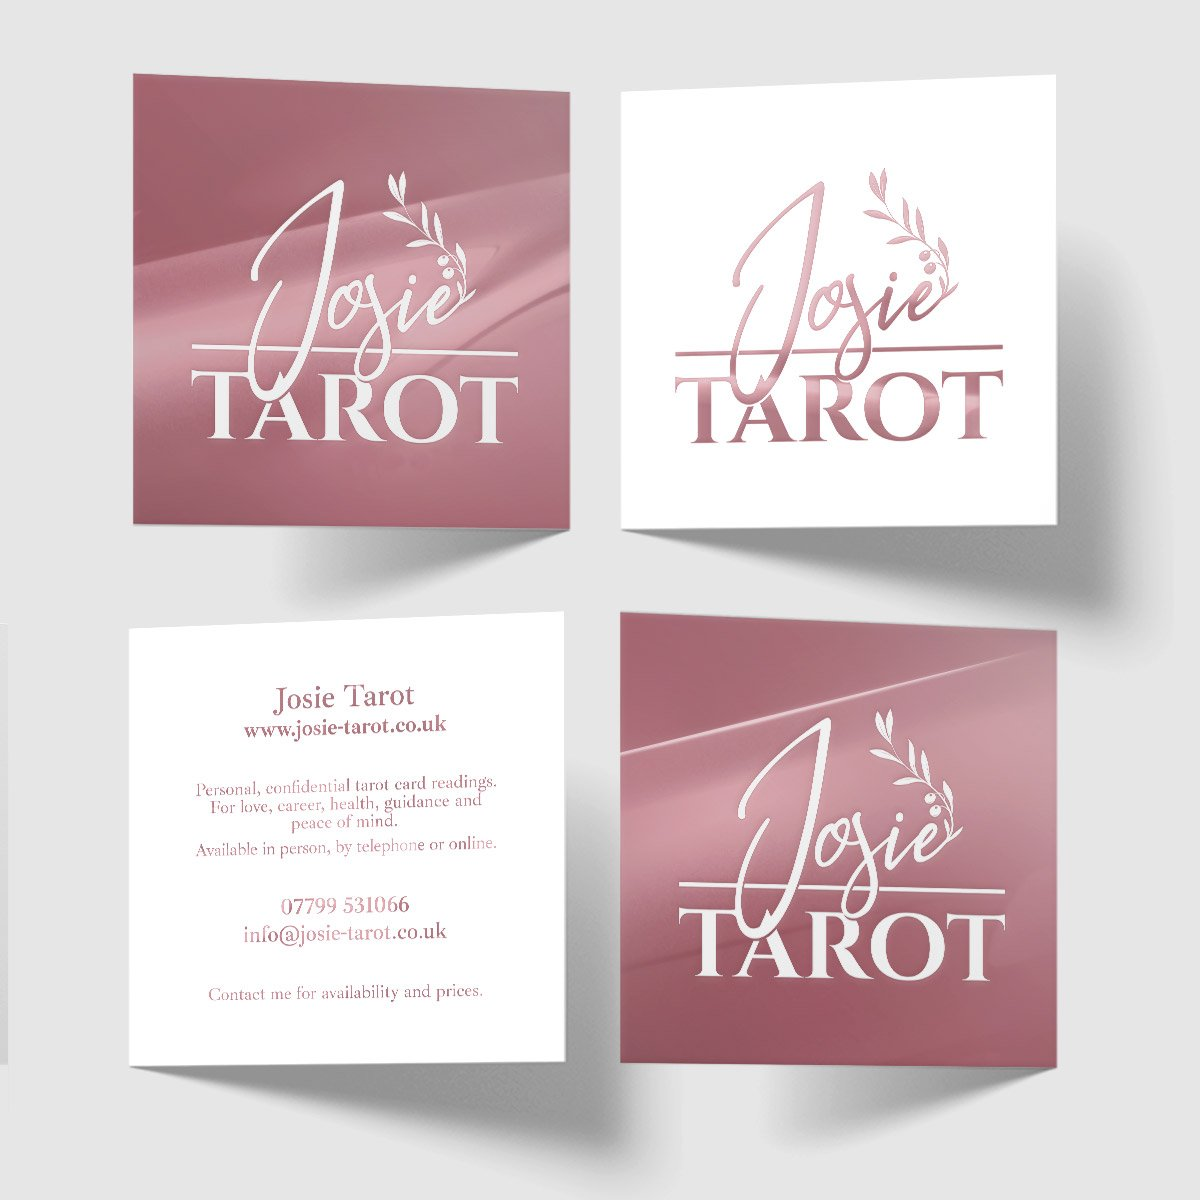 JOsie Tarot Spot Varnish Business Card Design